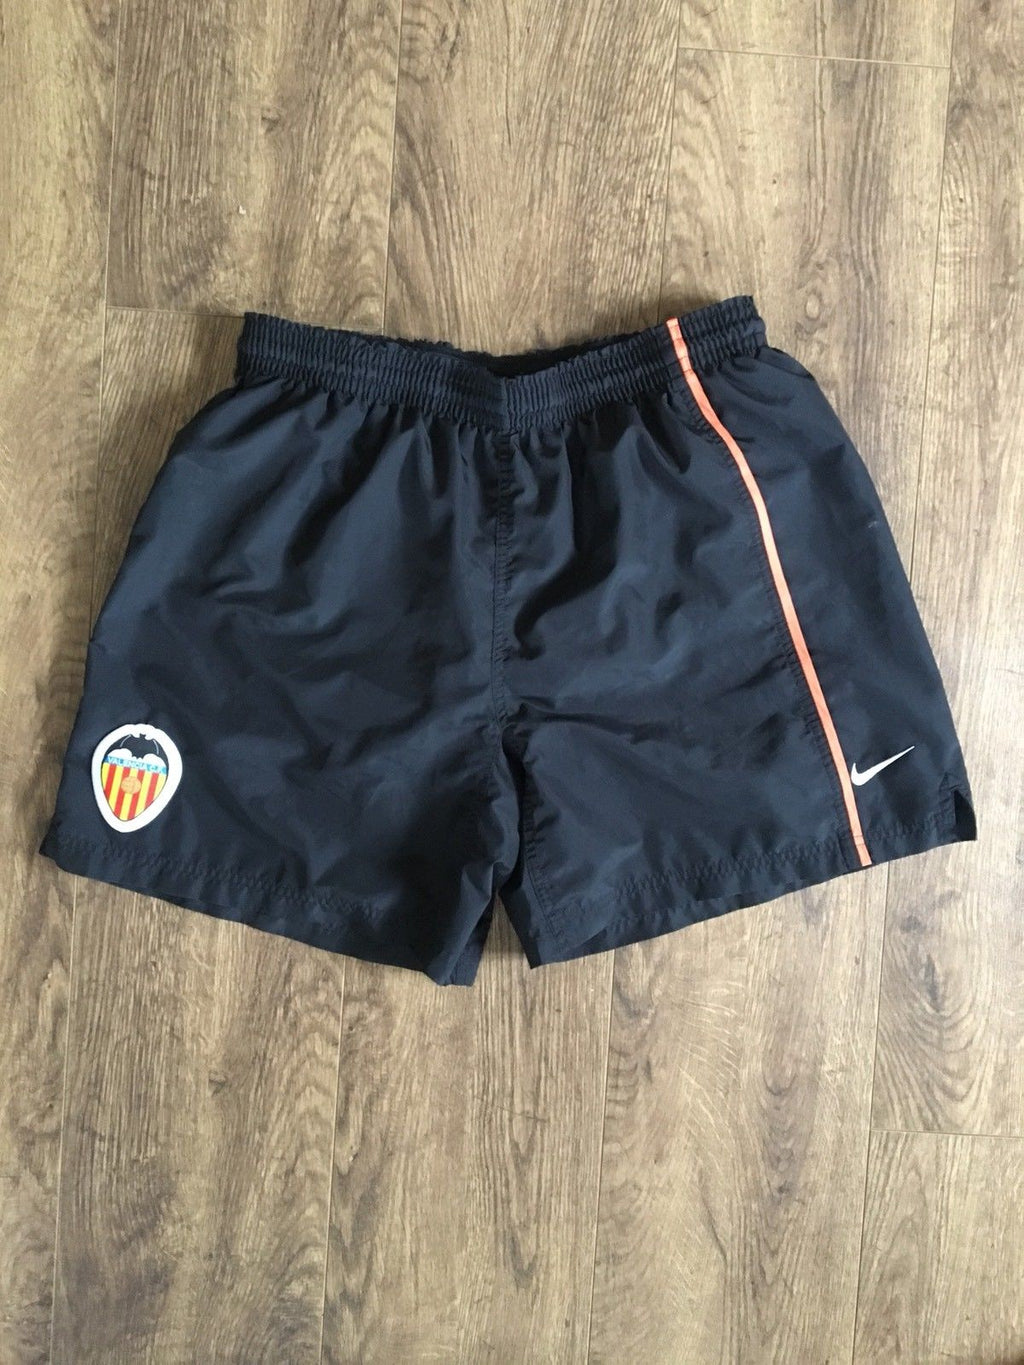 2002/03 Valencia Home Shorts (L)